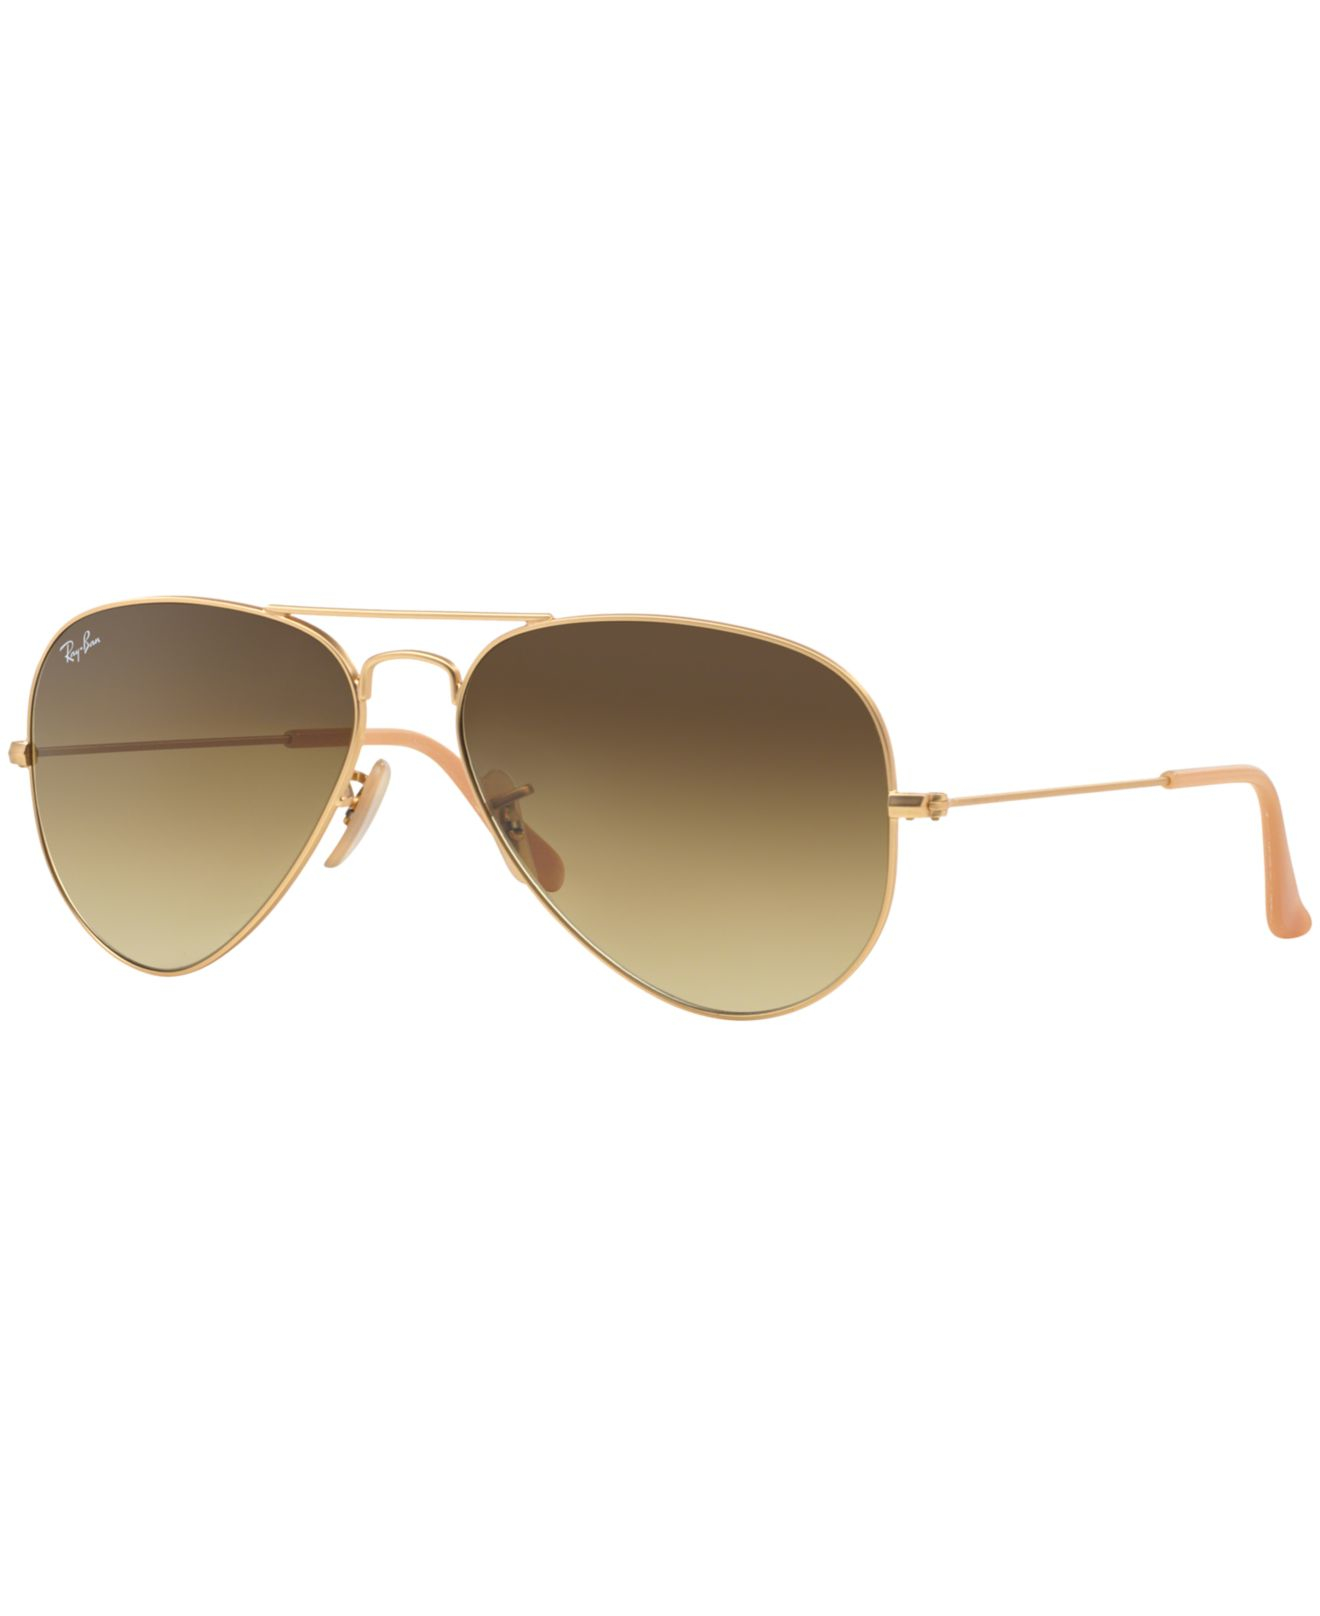 7ae6383462 Ray Ban 58014 2nd Chance « Heritage Malta